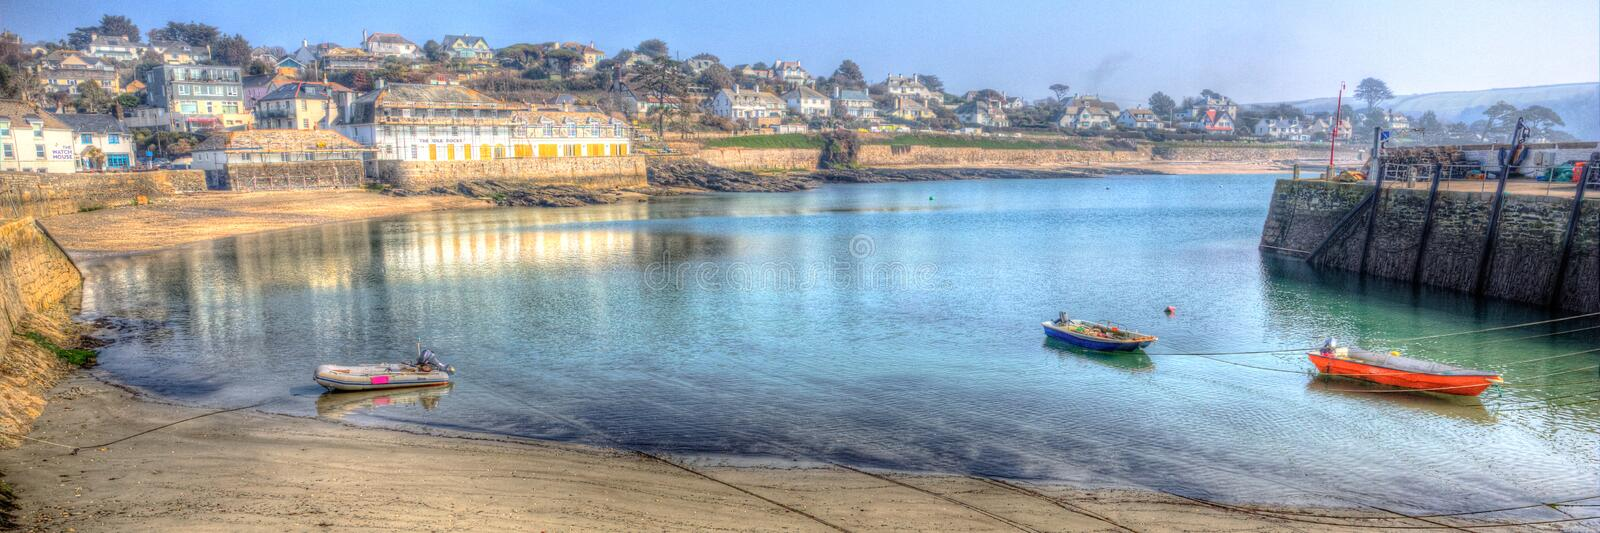 Panorama St Mawes harbour Cornwall Roseland Peninsula Cornish south coast in HDR. Boats in St Mawes harbour Cornwall on the Roseland Peninsula Cornish south royalty free stock image